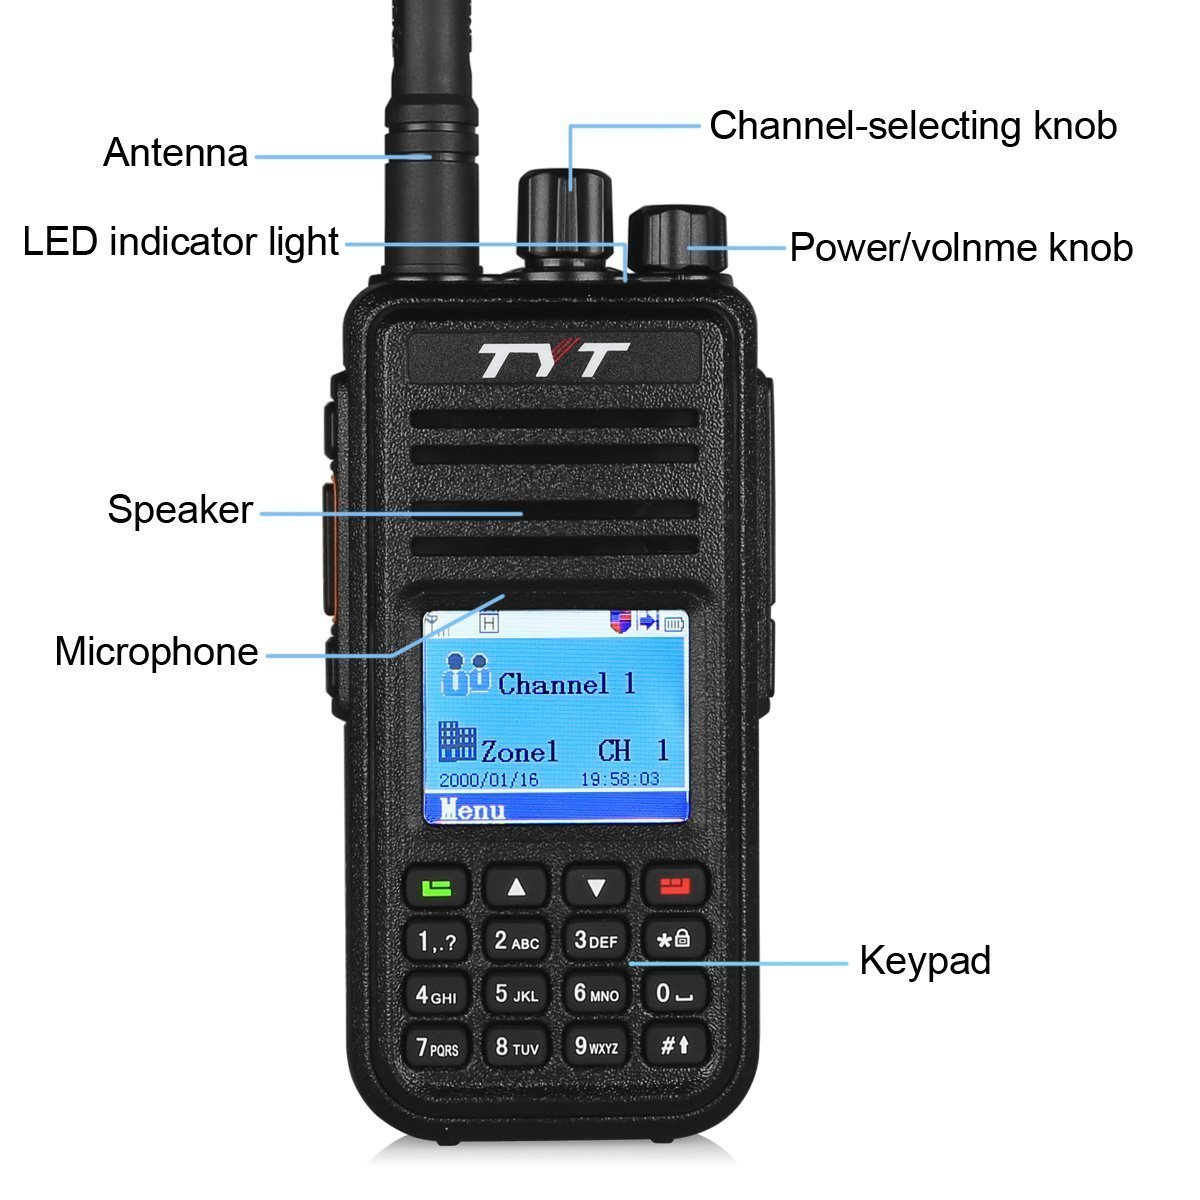 Programming Cable and 2 Antenna with Color LCD Display High Gain Antenna Included UHF 400-480Mhz Up to 1000 Channels TYT MD-380 Digital DMR Two Way Radio